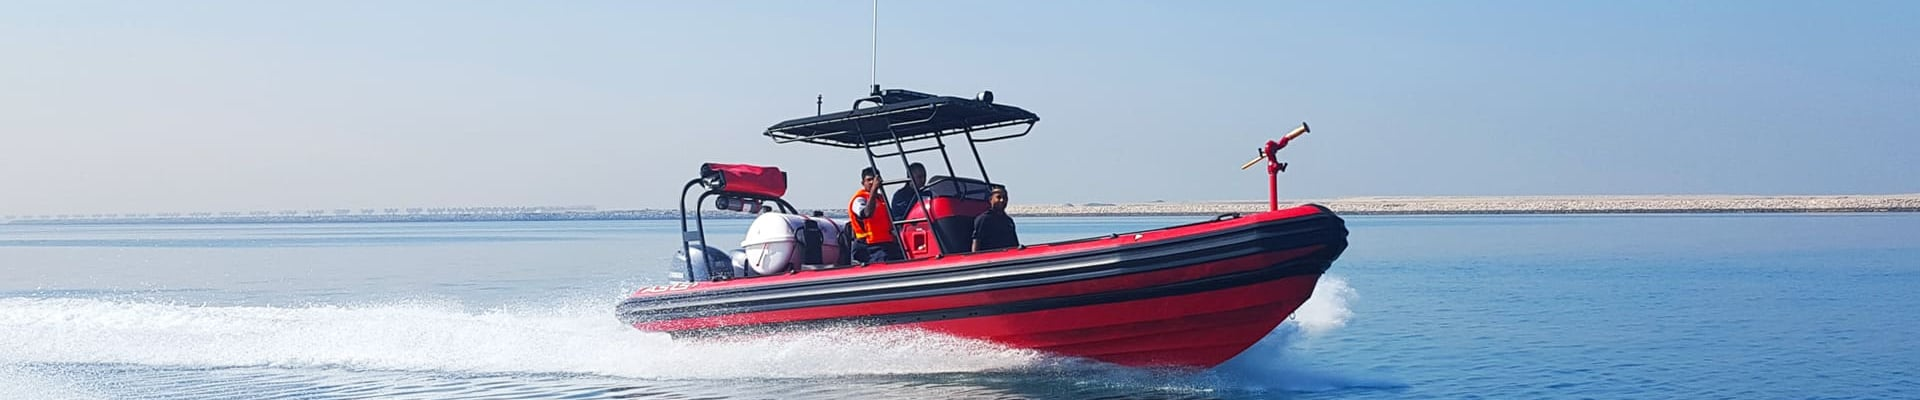 fire-rescue-rigid-inflatable-boats